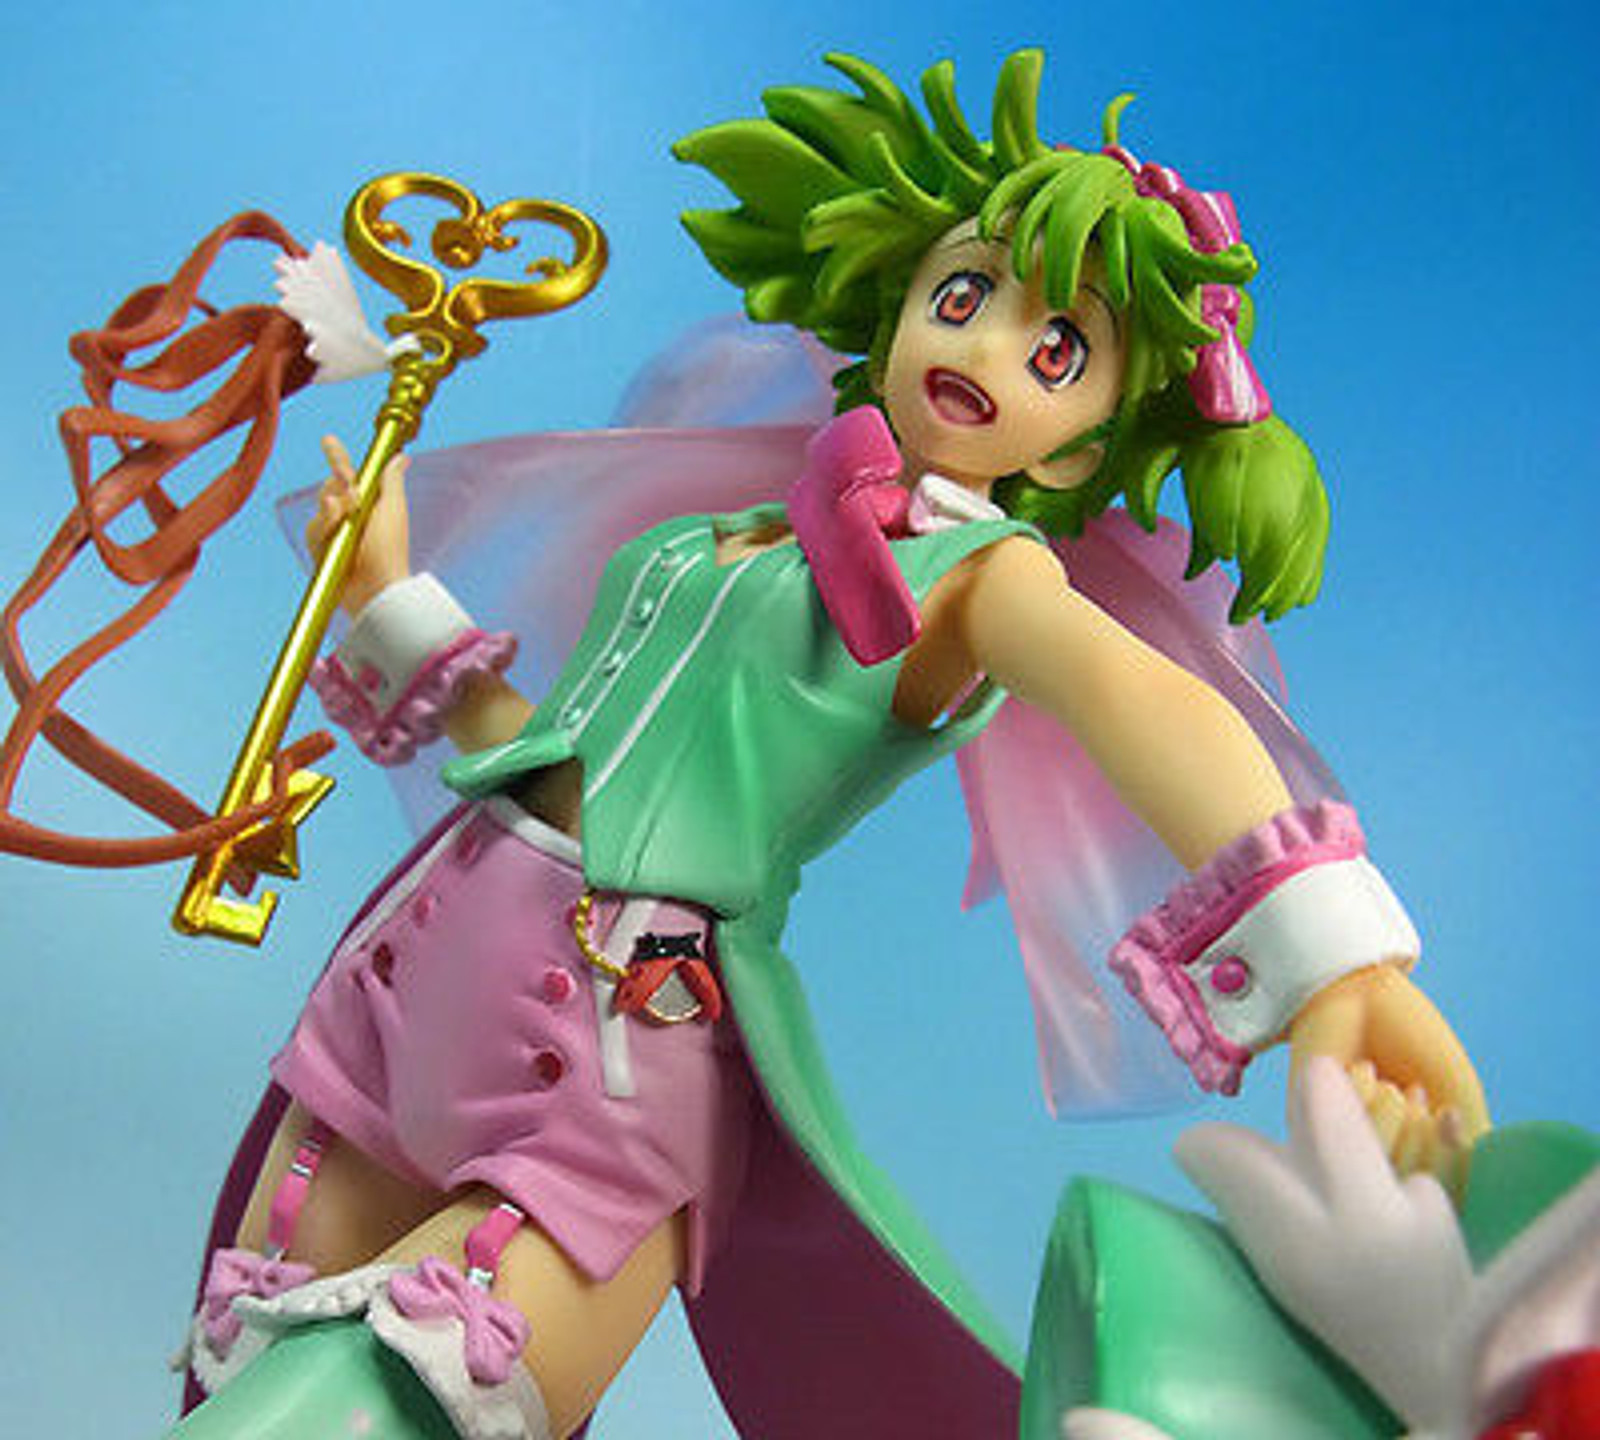 Macross Frontier Ranka Lee Pastel ver. Ichiban Kuji 1.5 Figure Banpresto JAPAN ANIME